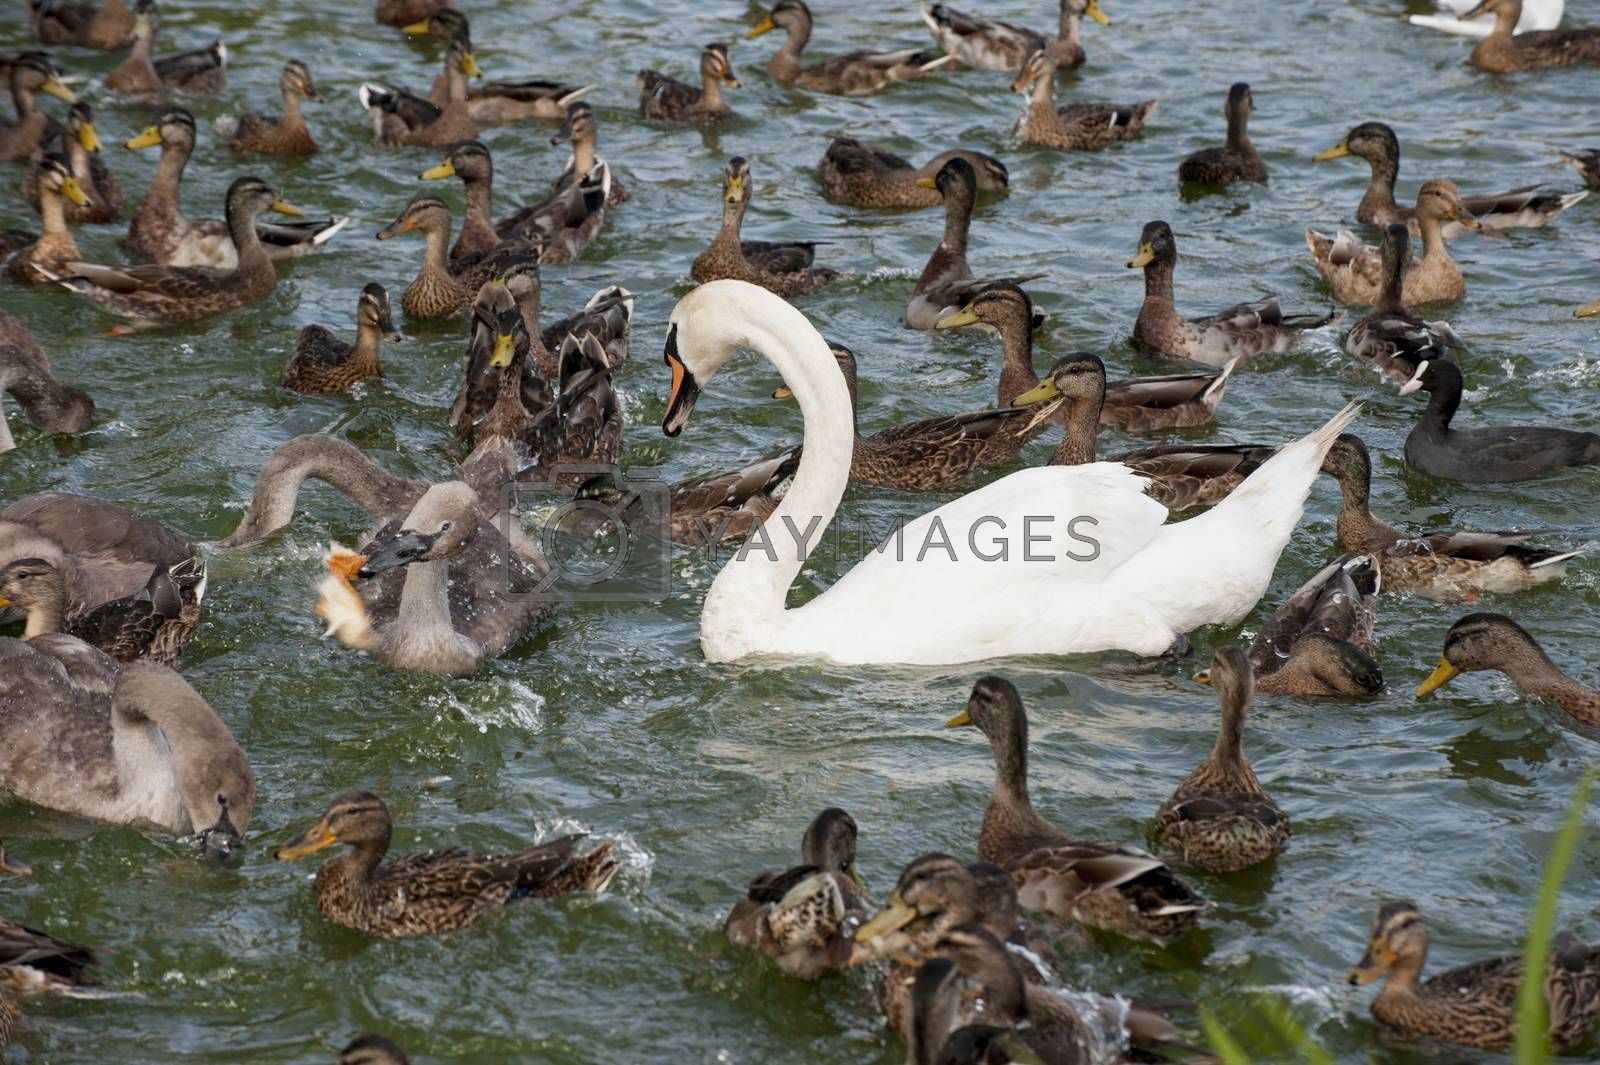 Waterfowl ducks and a white swan float in a pond